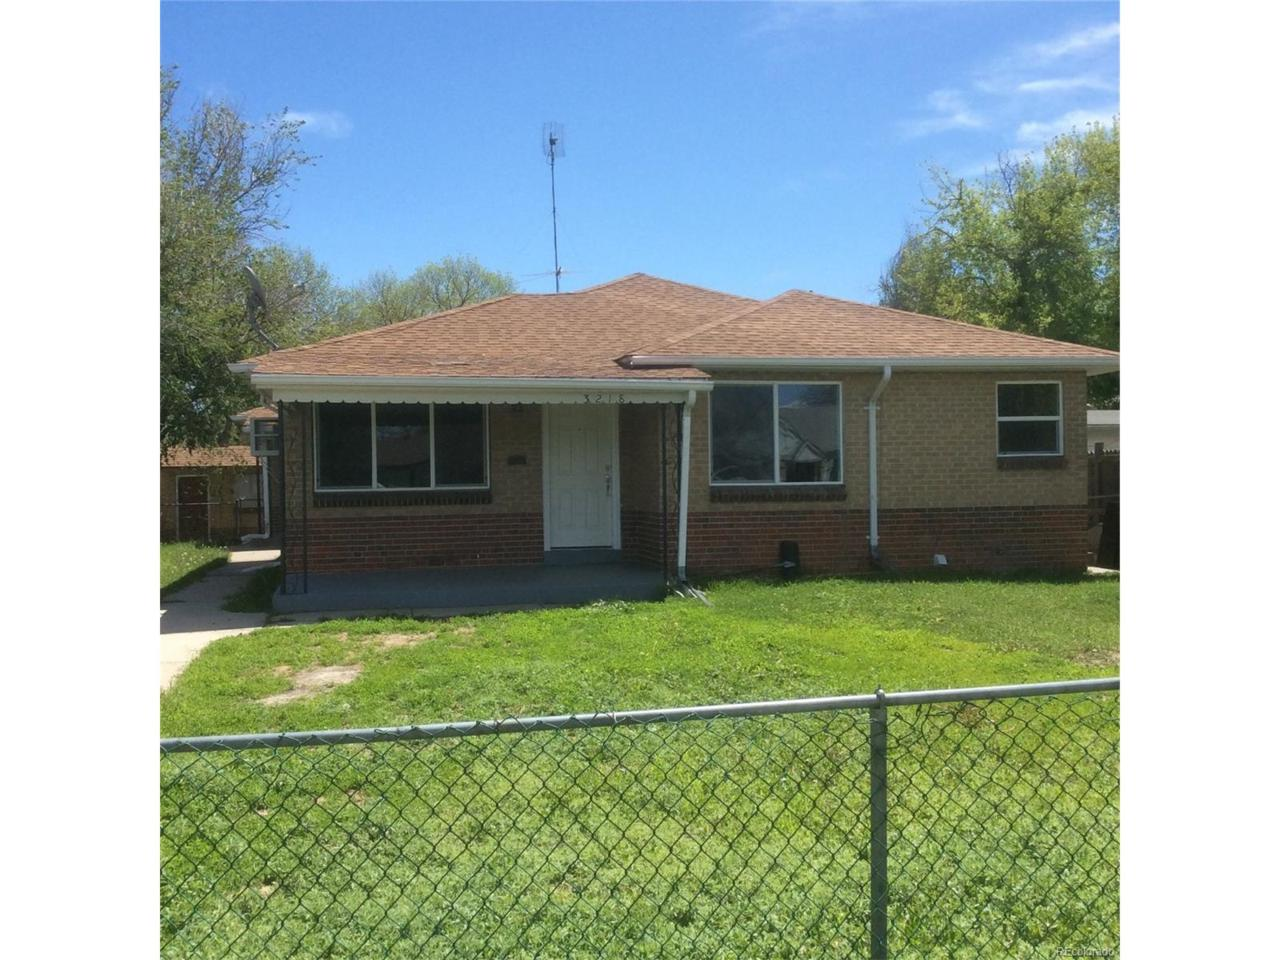 3218 Ash Street, Denver, CO 80207 (MLS #6124297) :: 8z Real Estate